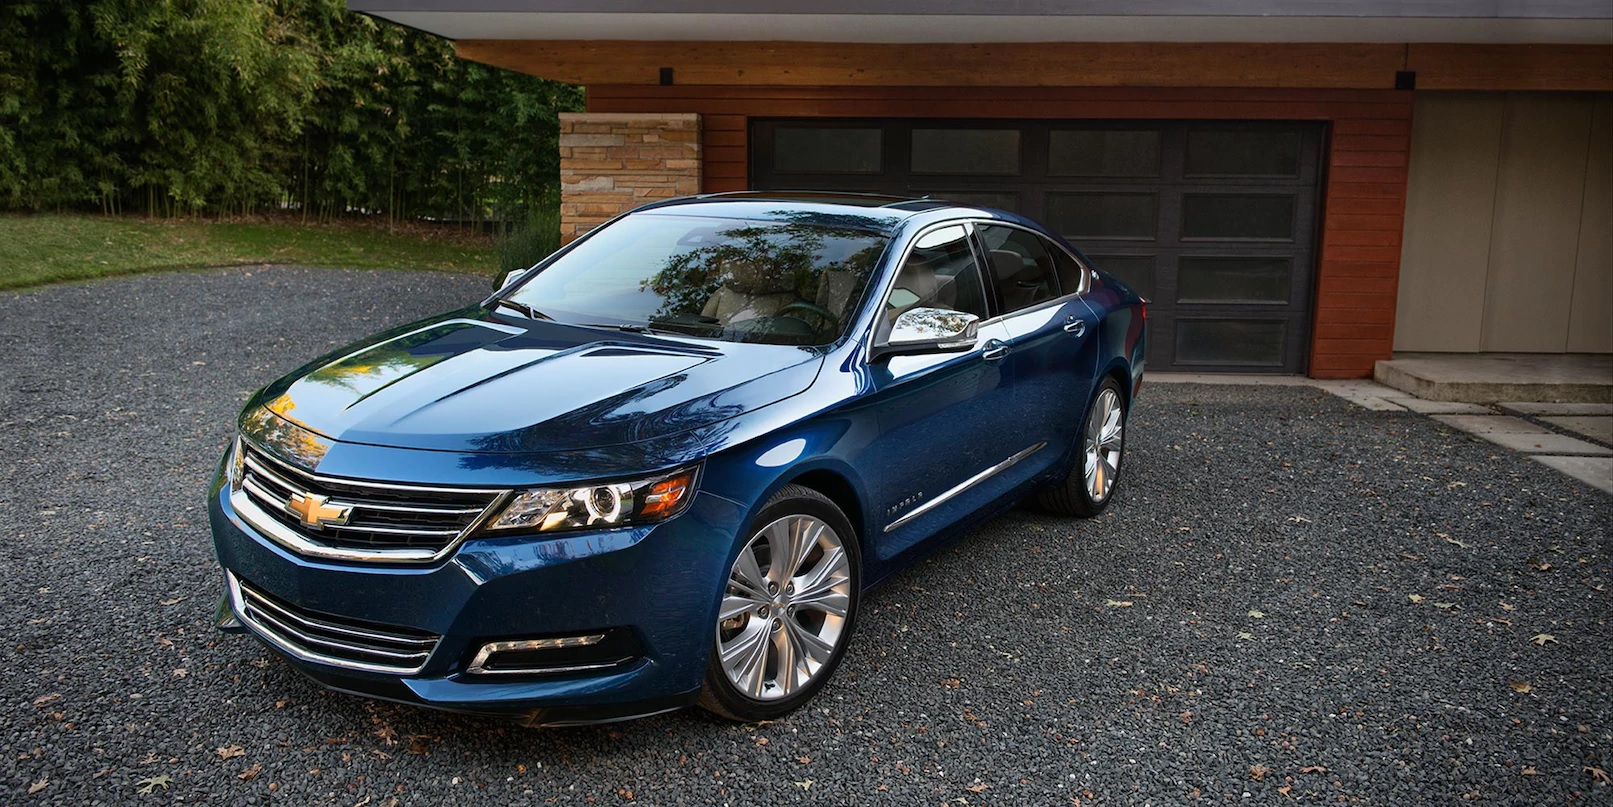 2018 Chevrolet Impala for Sale in Chicago, IL